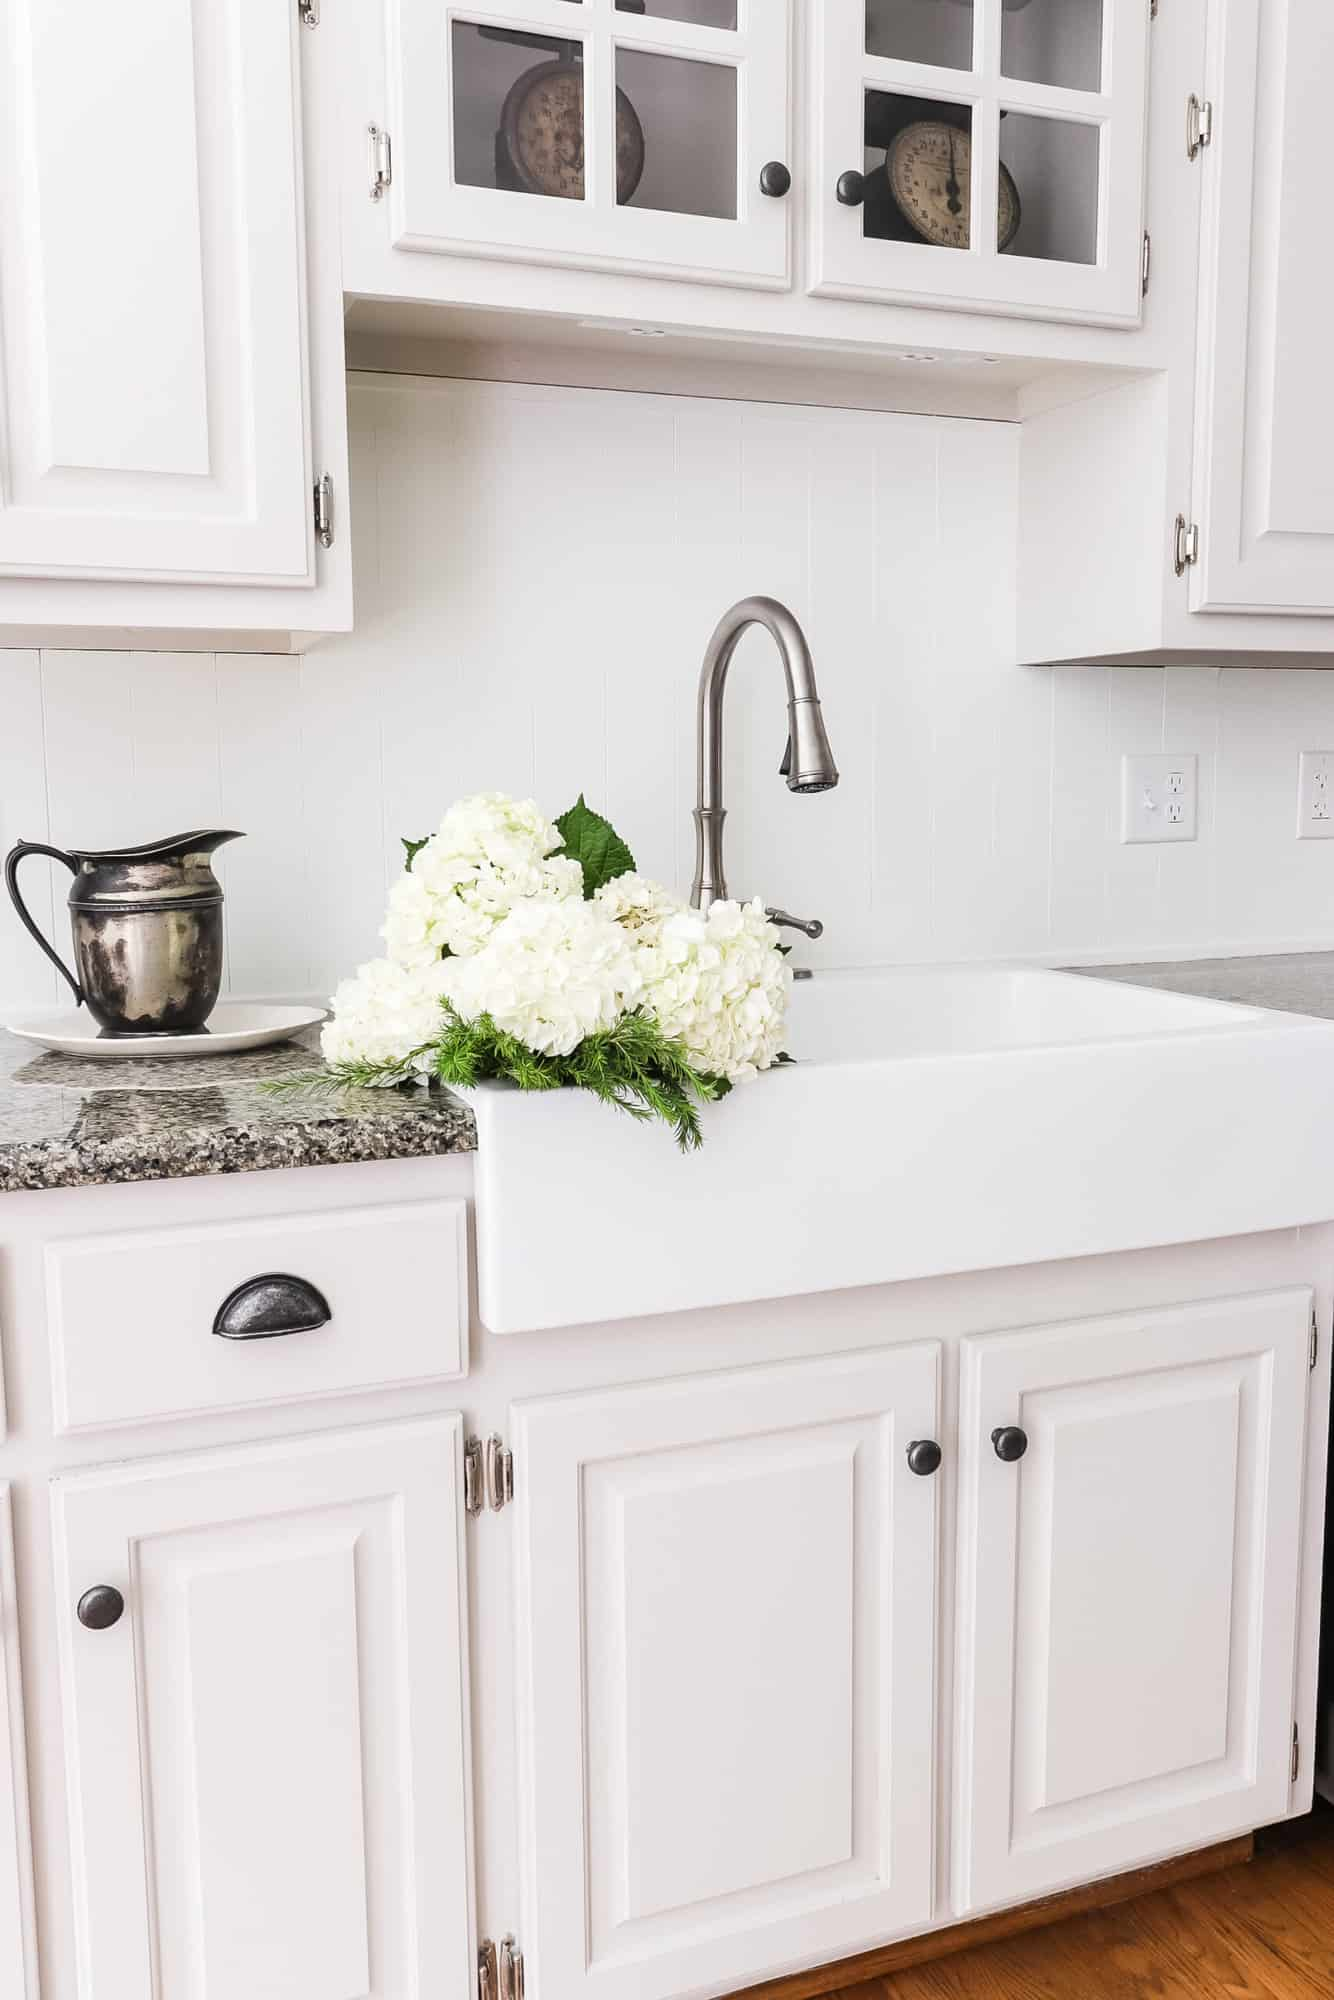 Apron front sink filled with hydrangeas